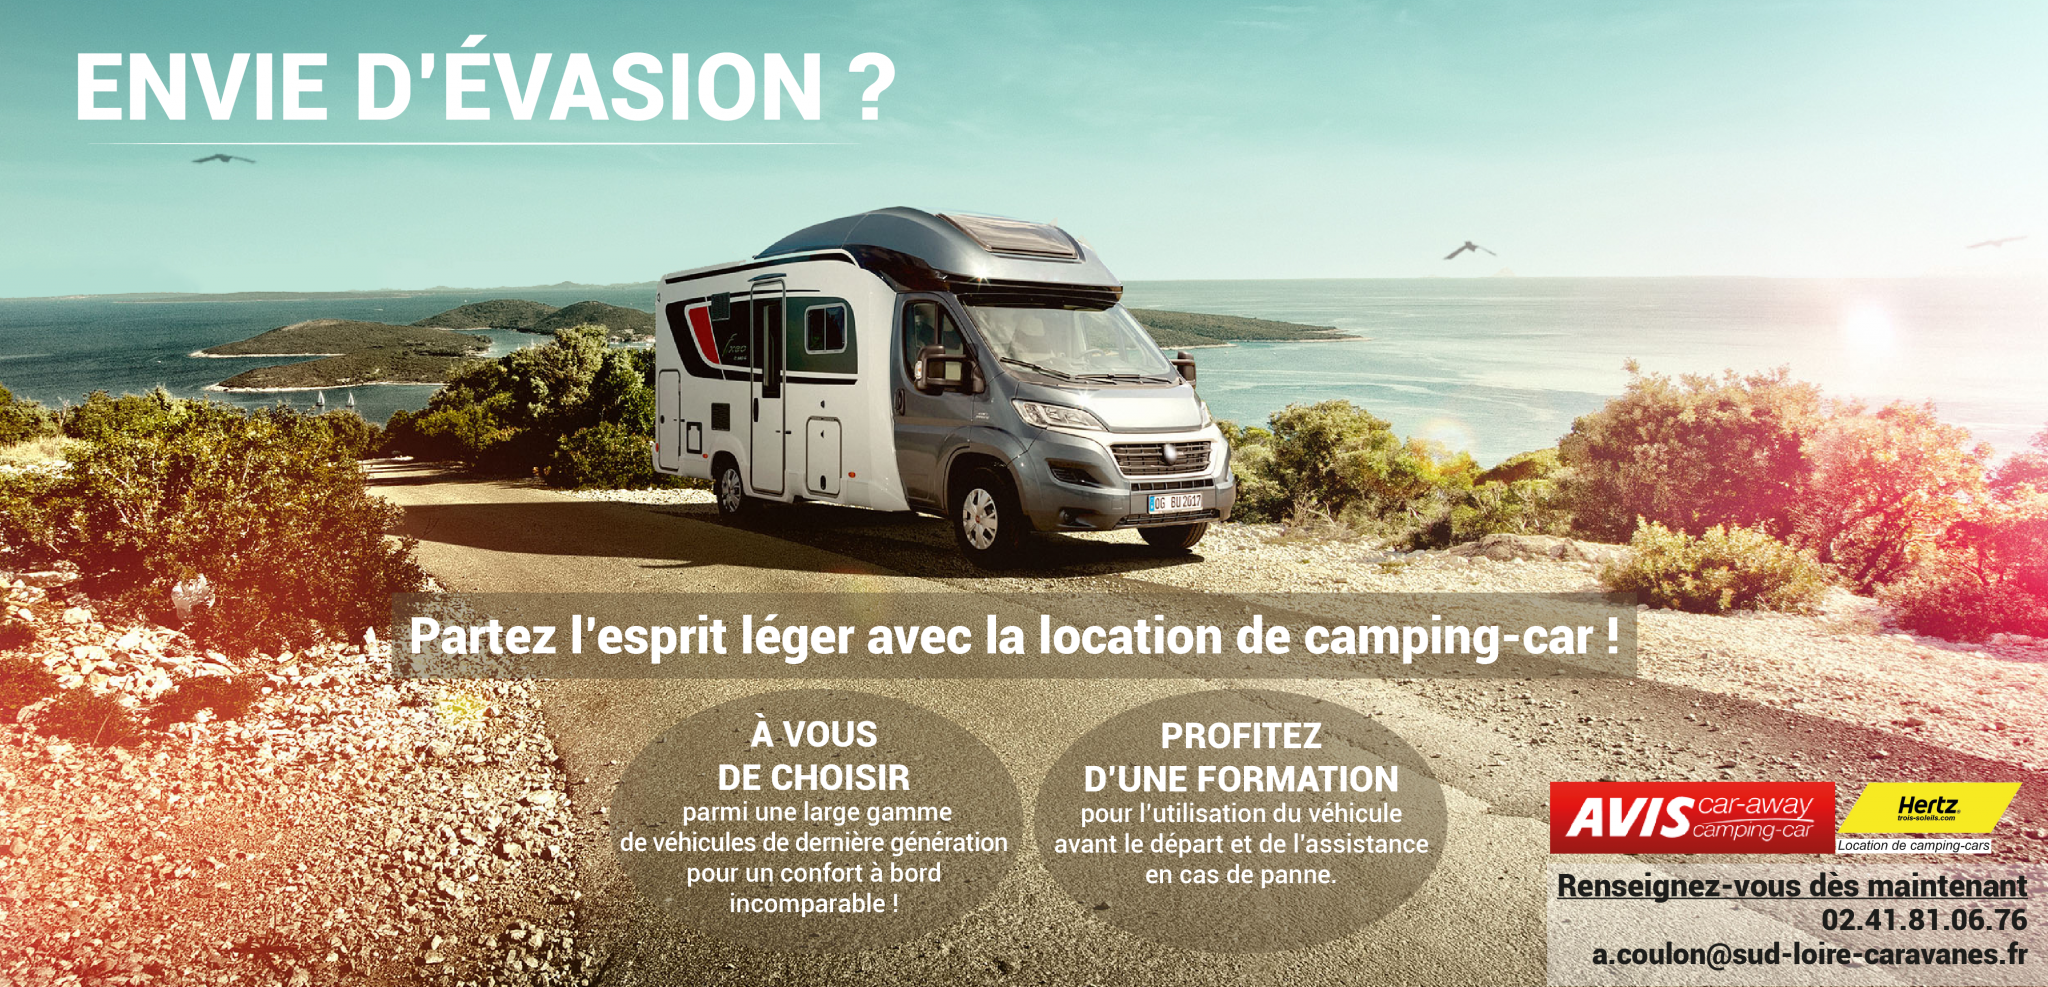 Et Camping Caravaning D'occasion Car Central Caravane CqnWtOw